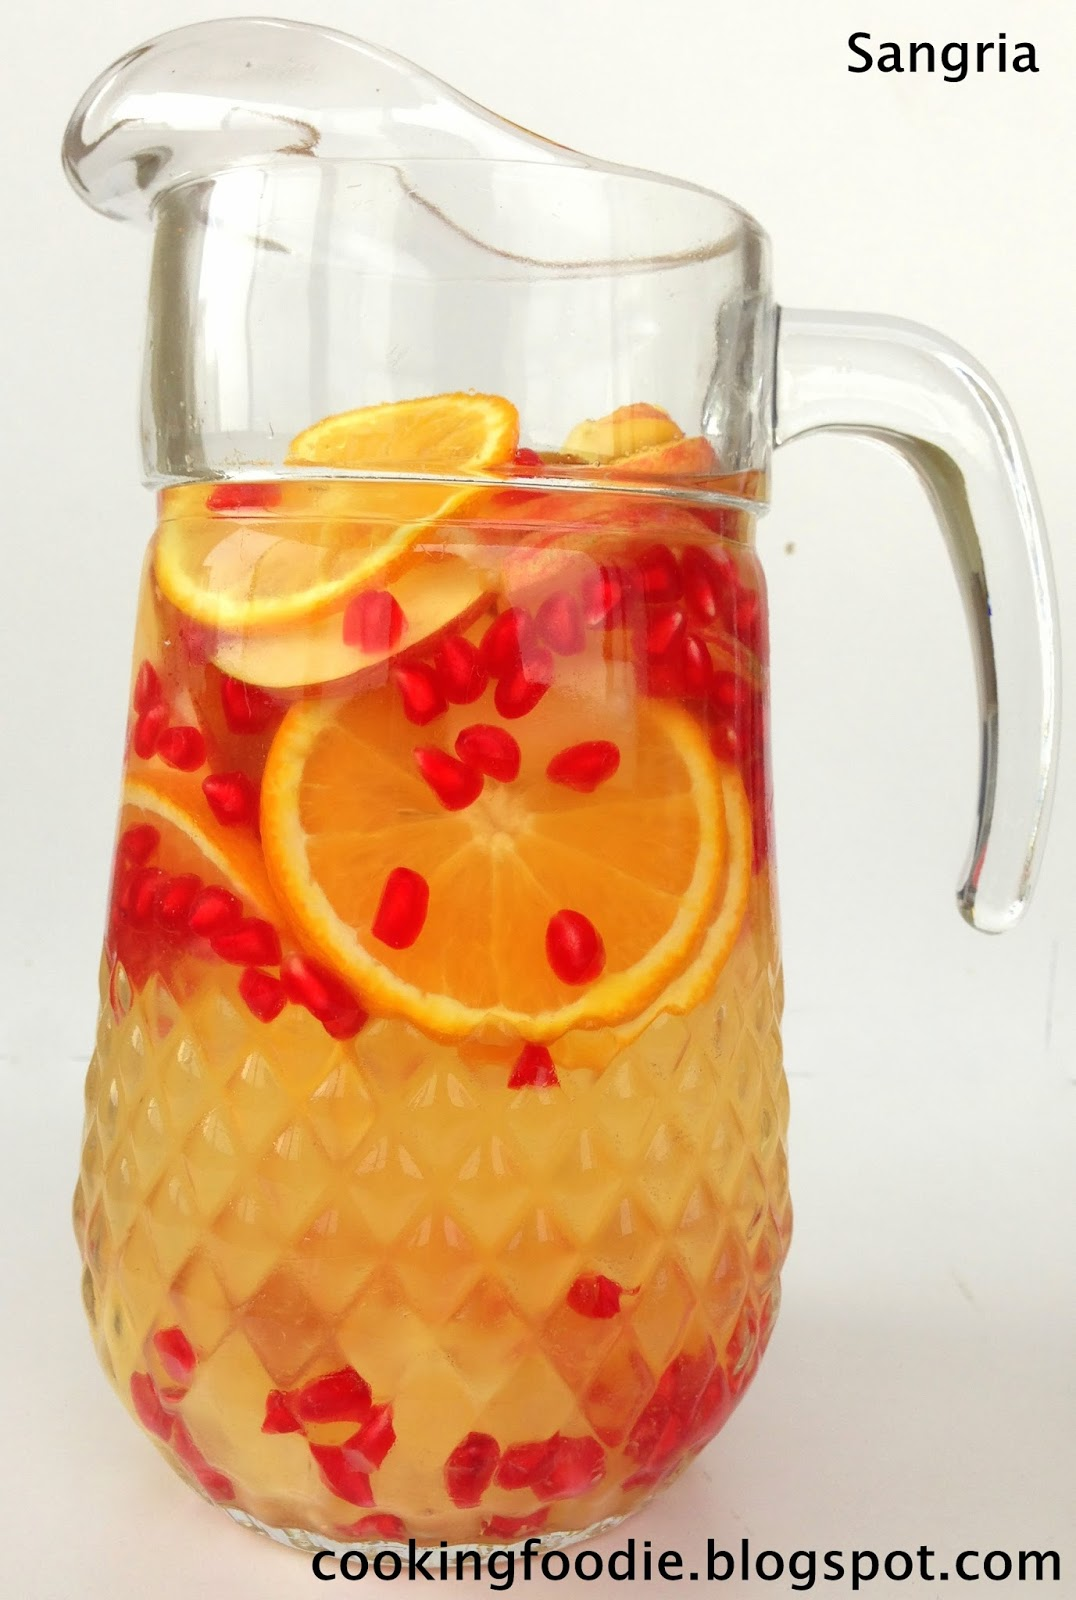 365 days of Eating: Non-alcoholic Sangria